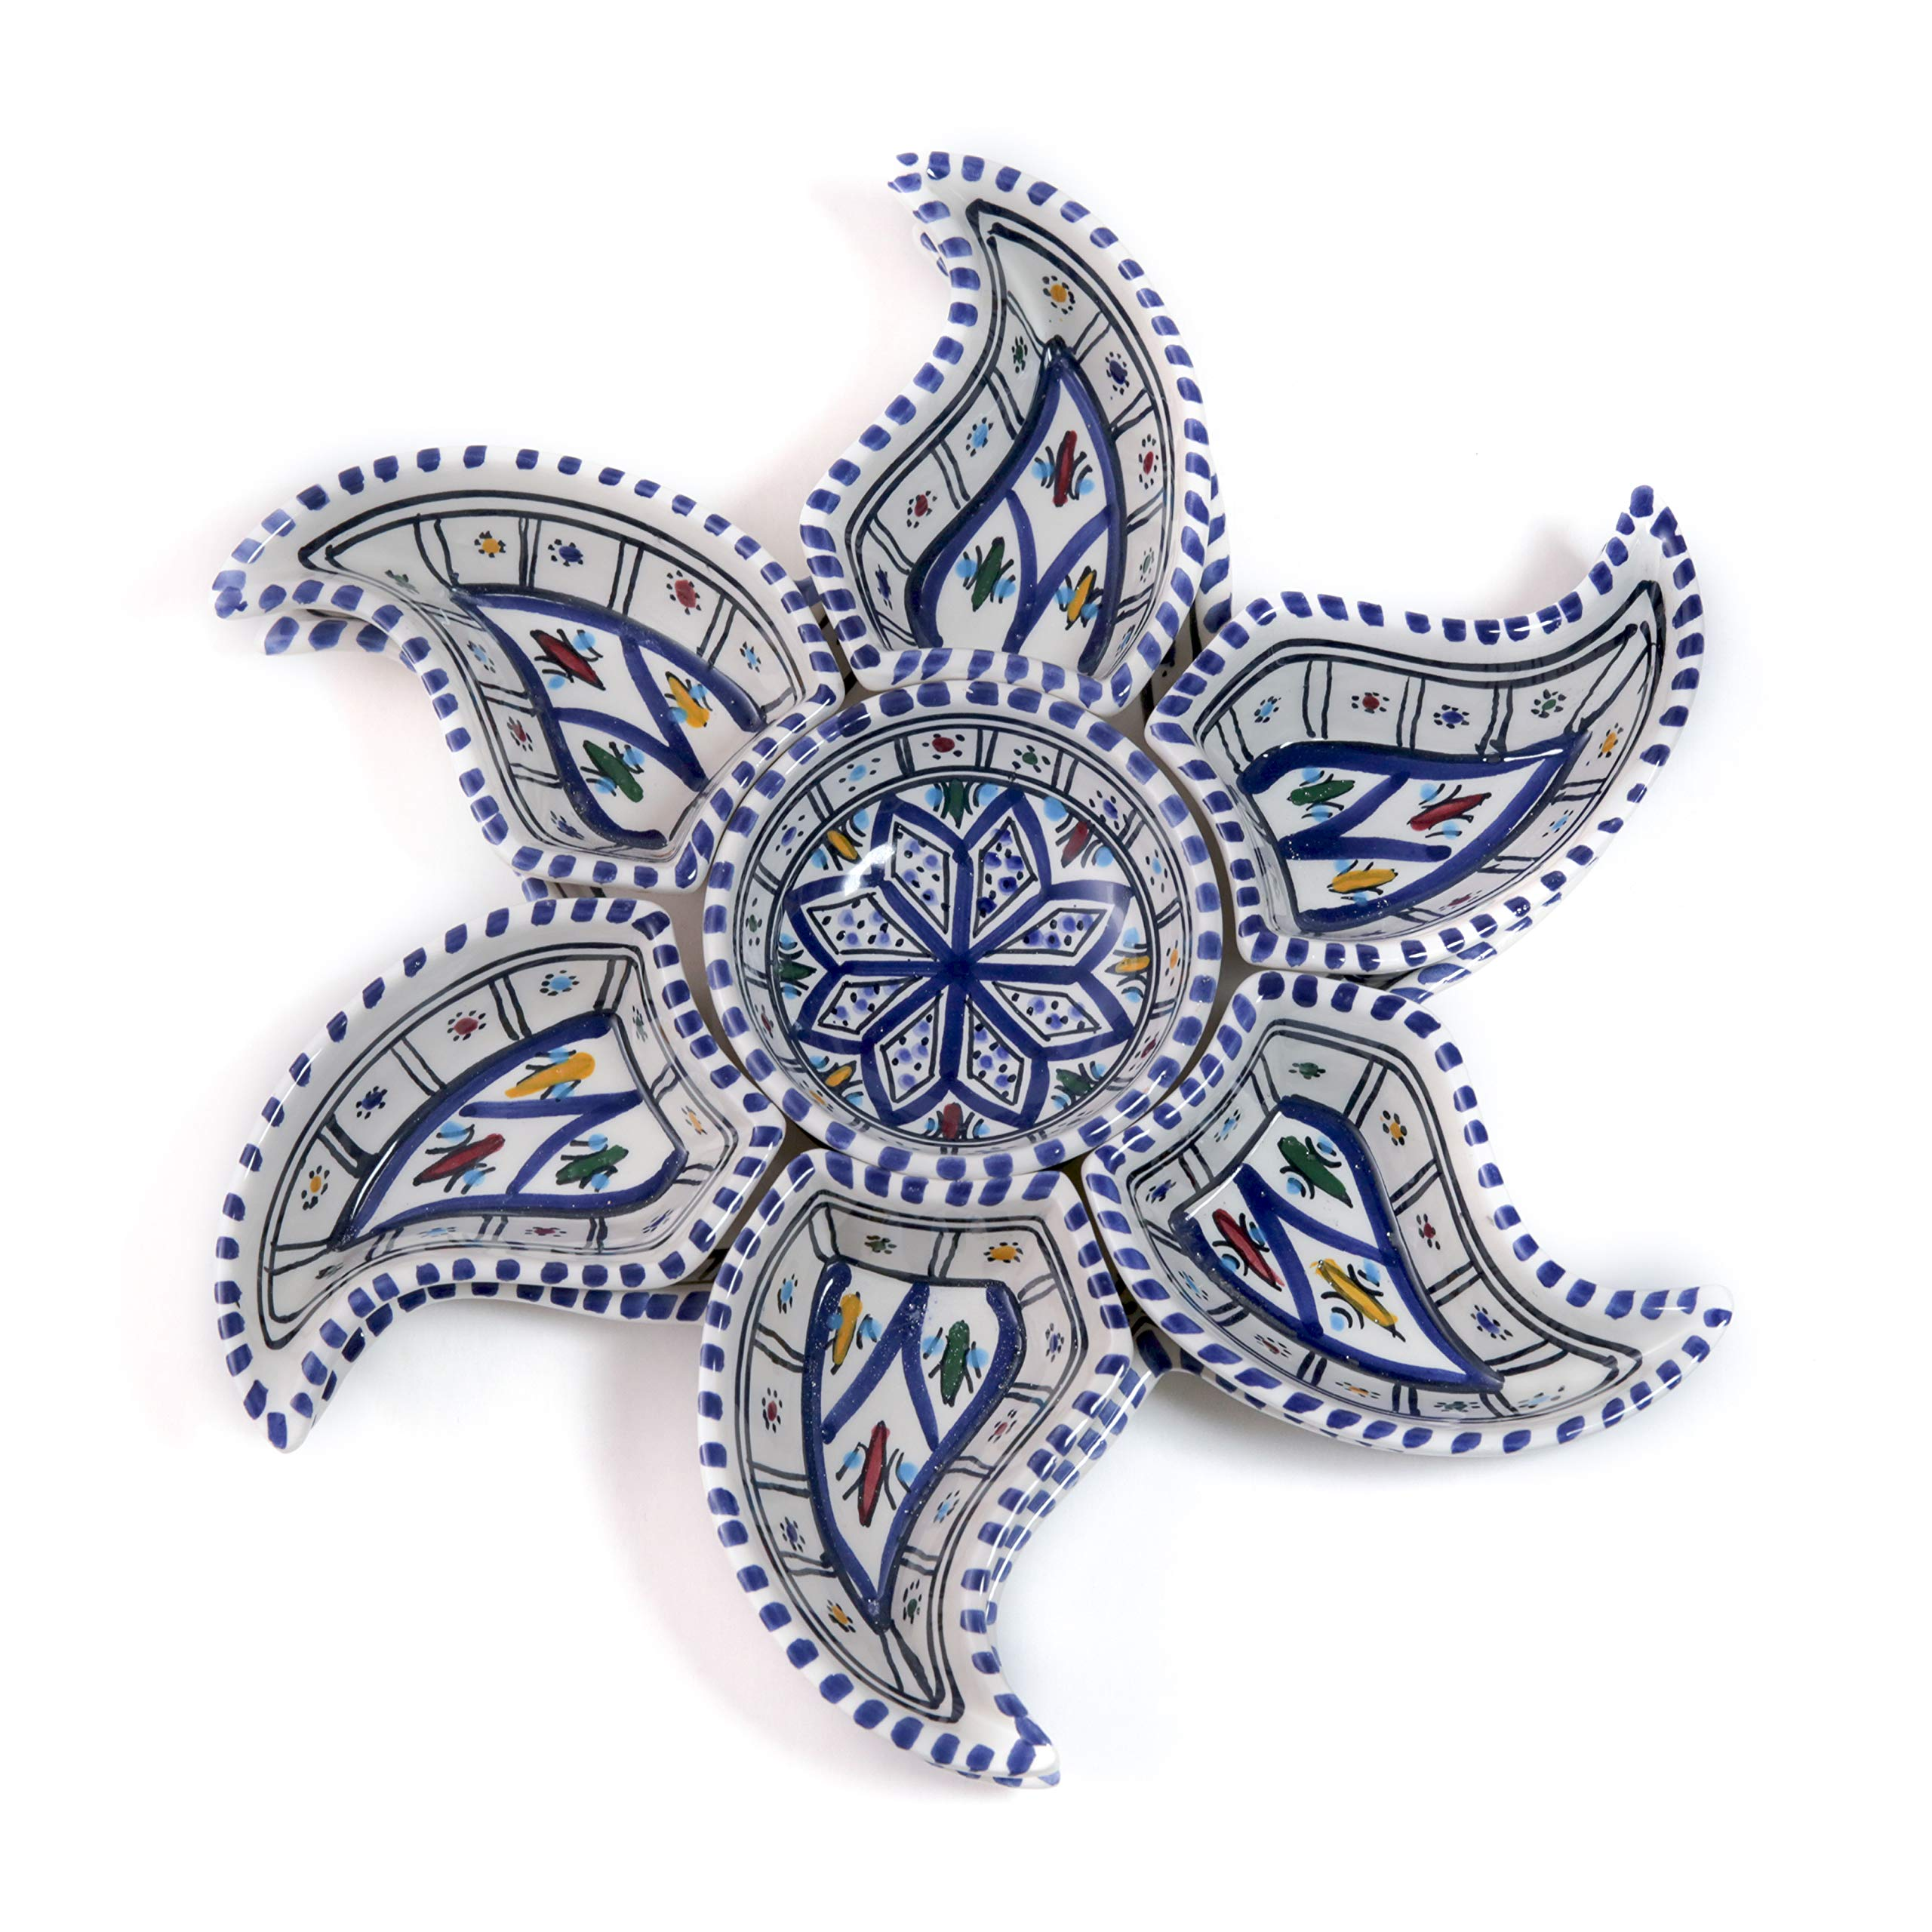 Kamsah 8 Piece Star Dippers Plate Set & Serving Platter, Custom Hand-Painted Ceramic Serving Dishes and Trays for Celebrations, Parties and Events (Large, Bohemian Blue)